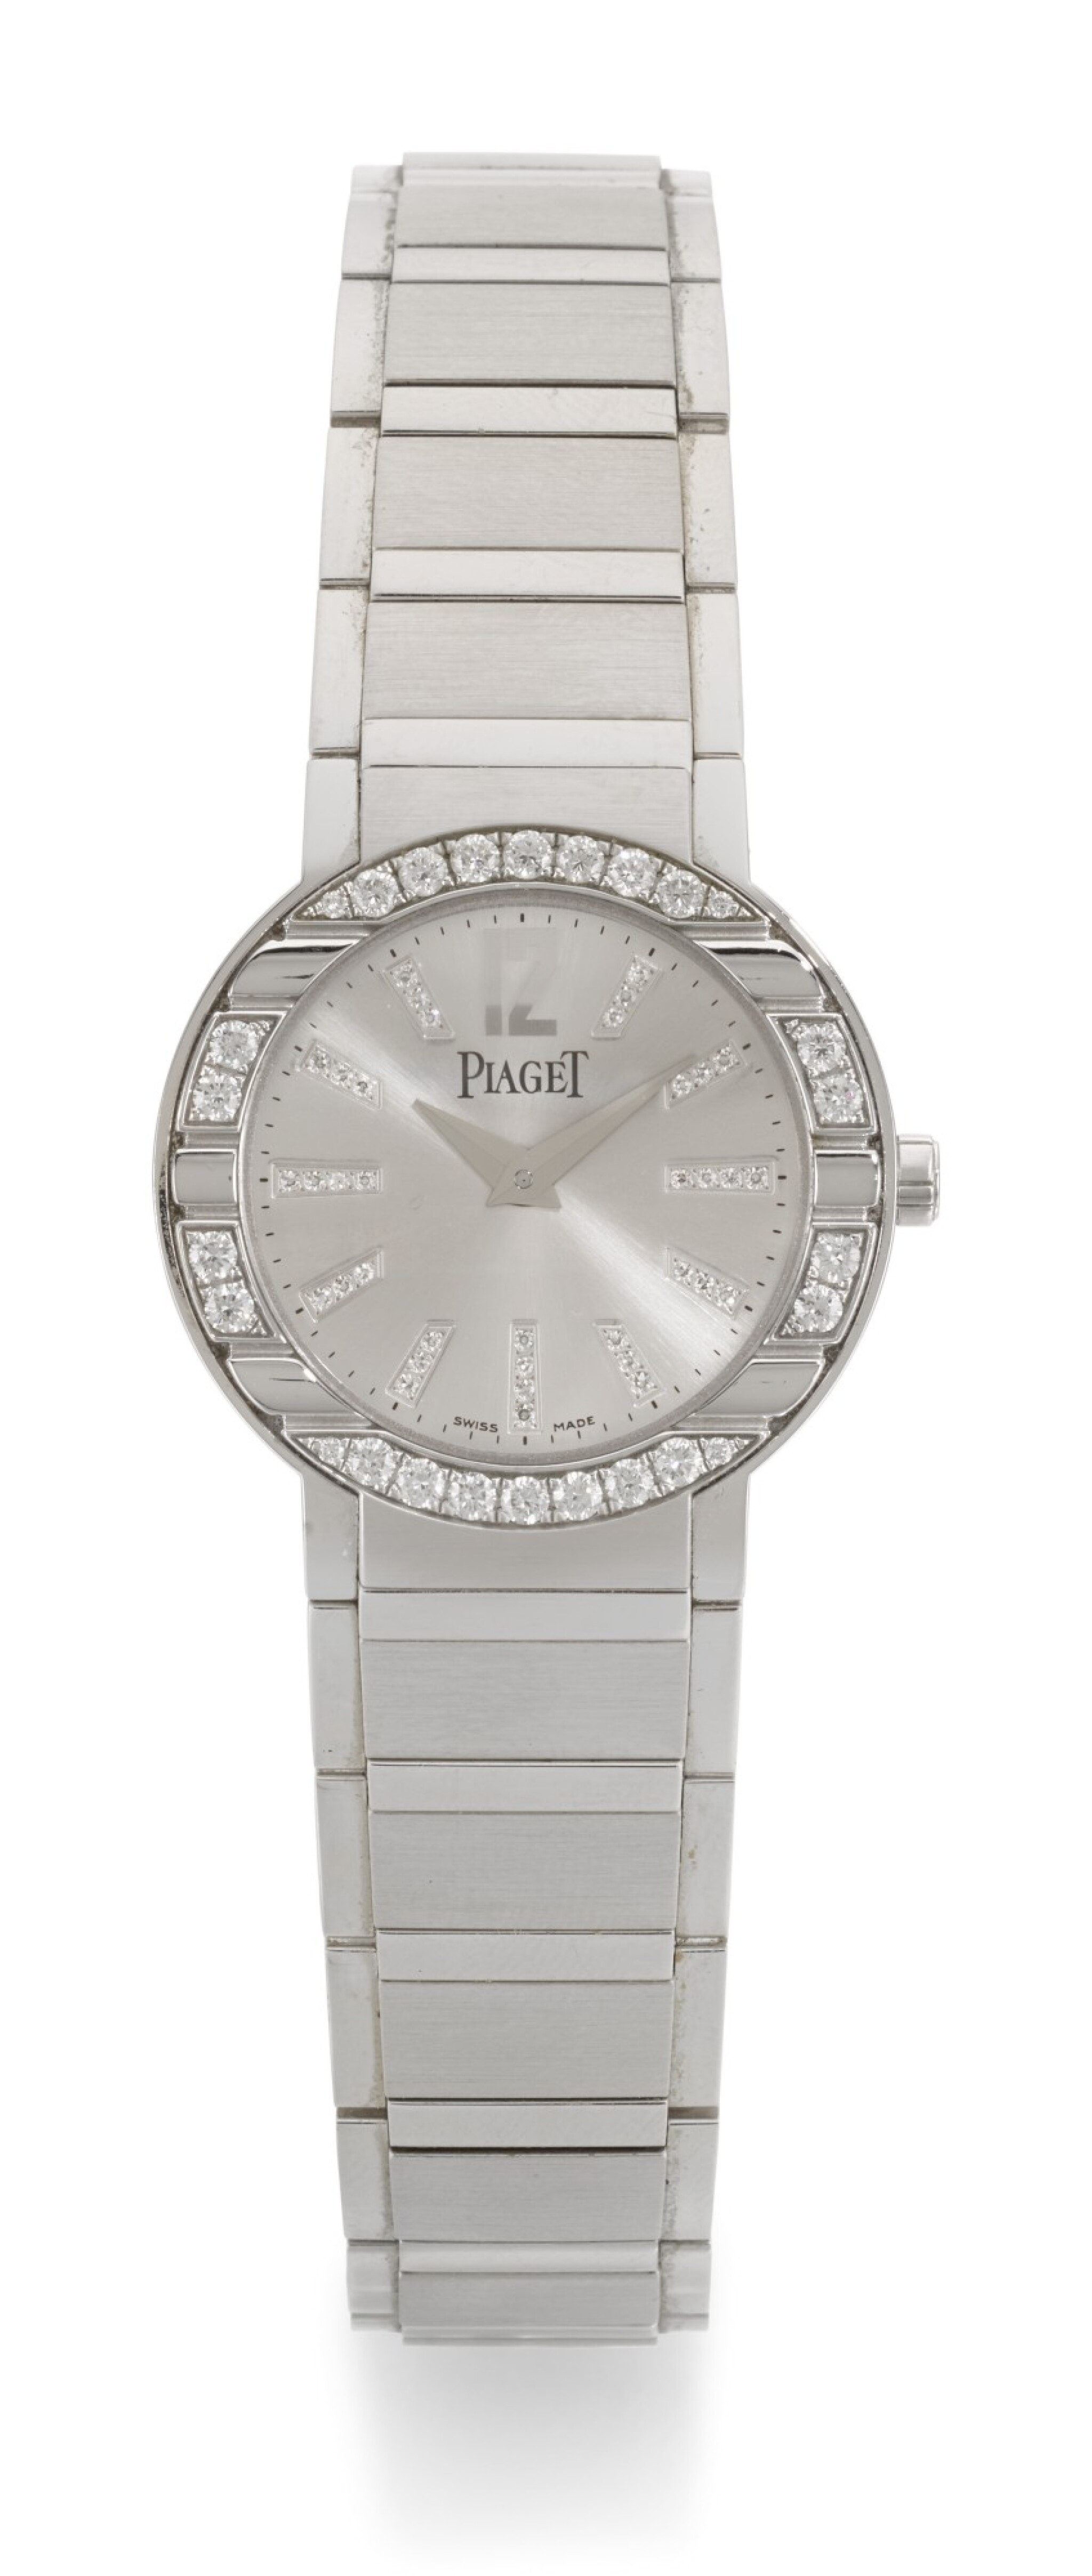 PIAGET | POLO, REFERENCE P10140, WHITE GOLD DIAMOND-SET BRACELET WATCH, CIRCA 2006